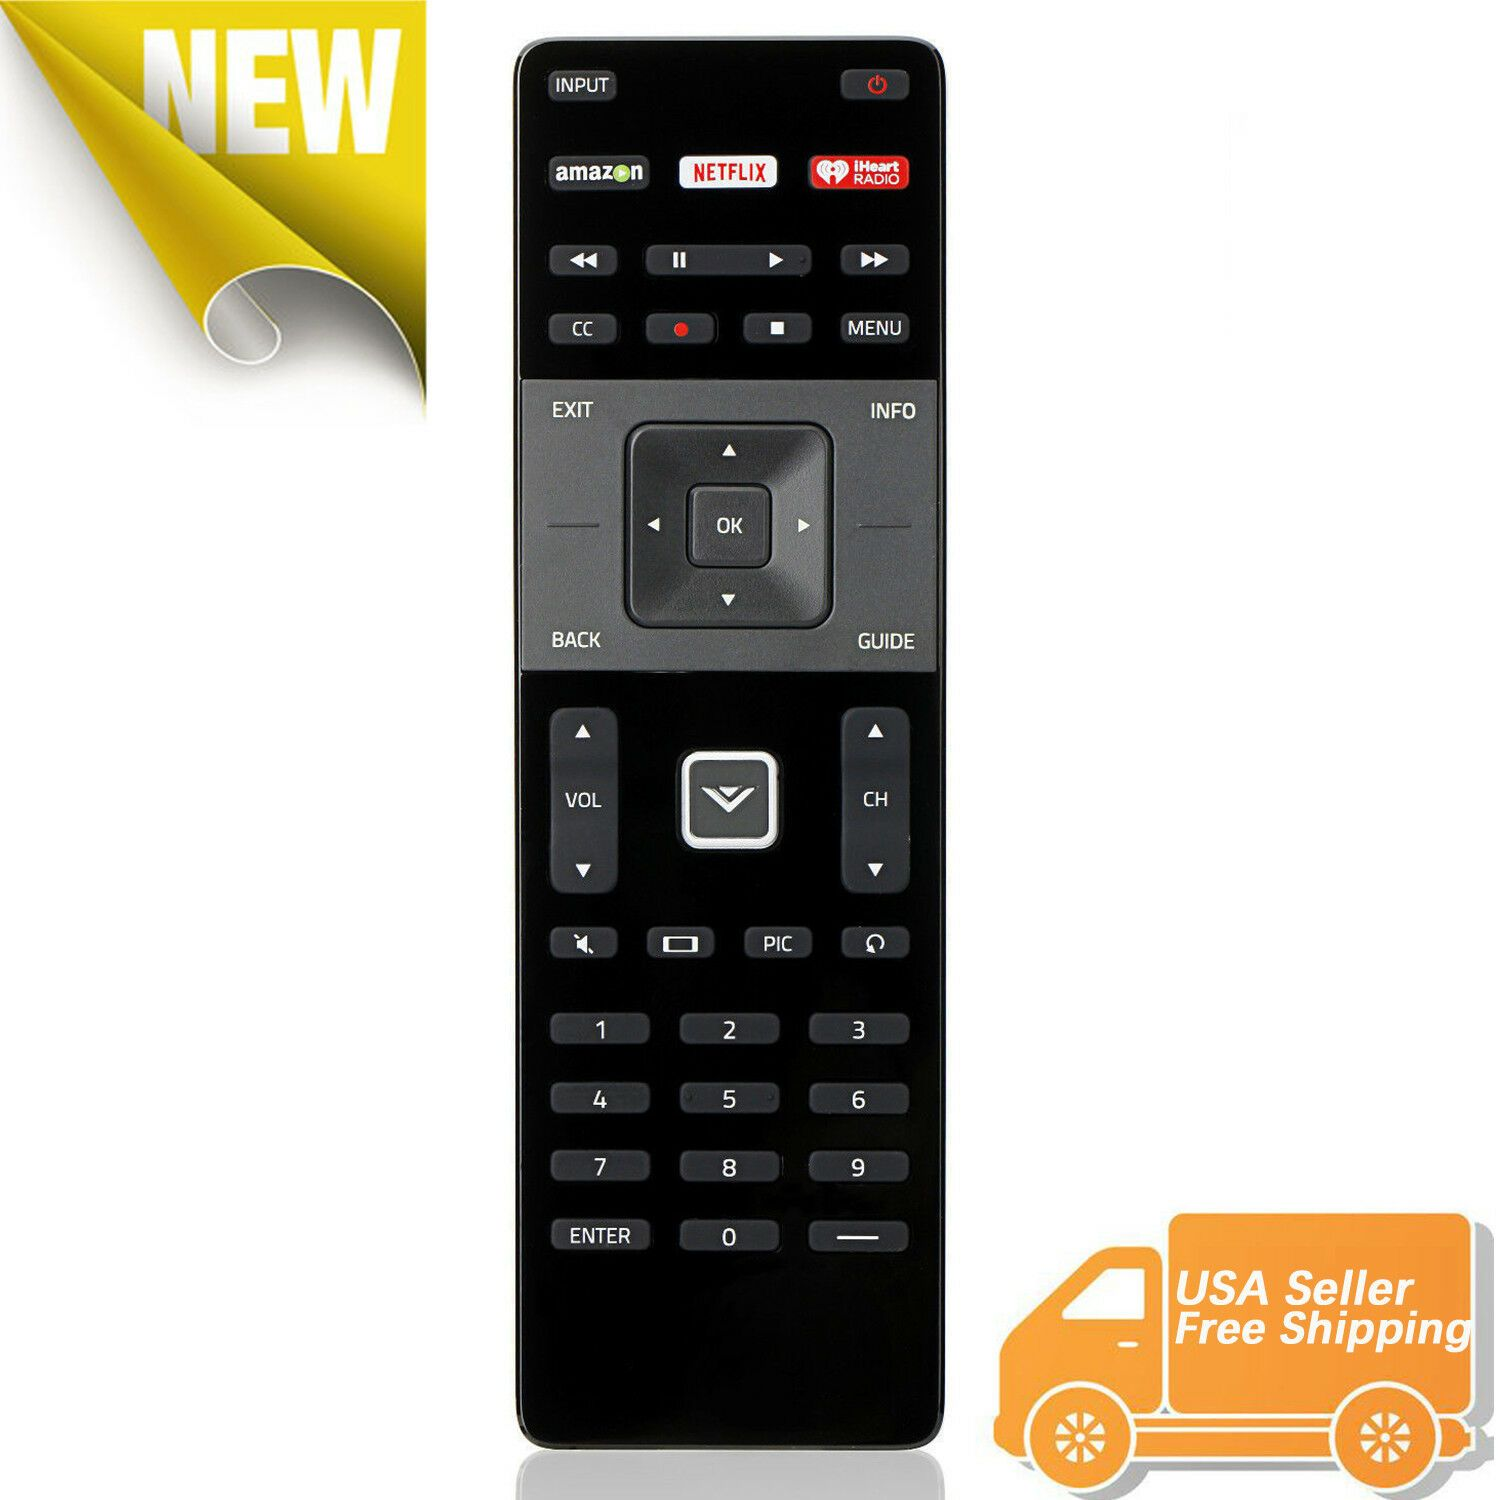 Details about XRT122 for Smart TV Vizio Remote Control w